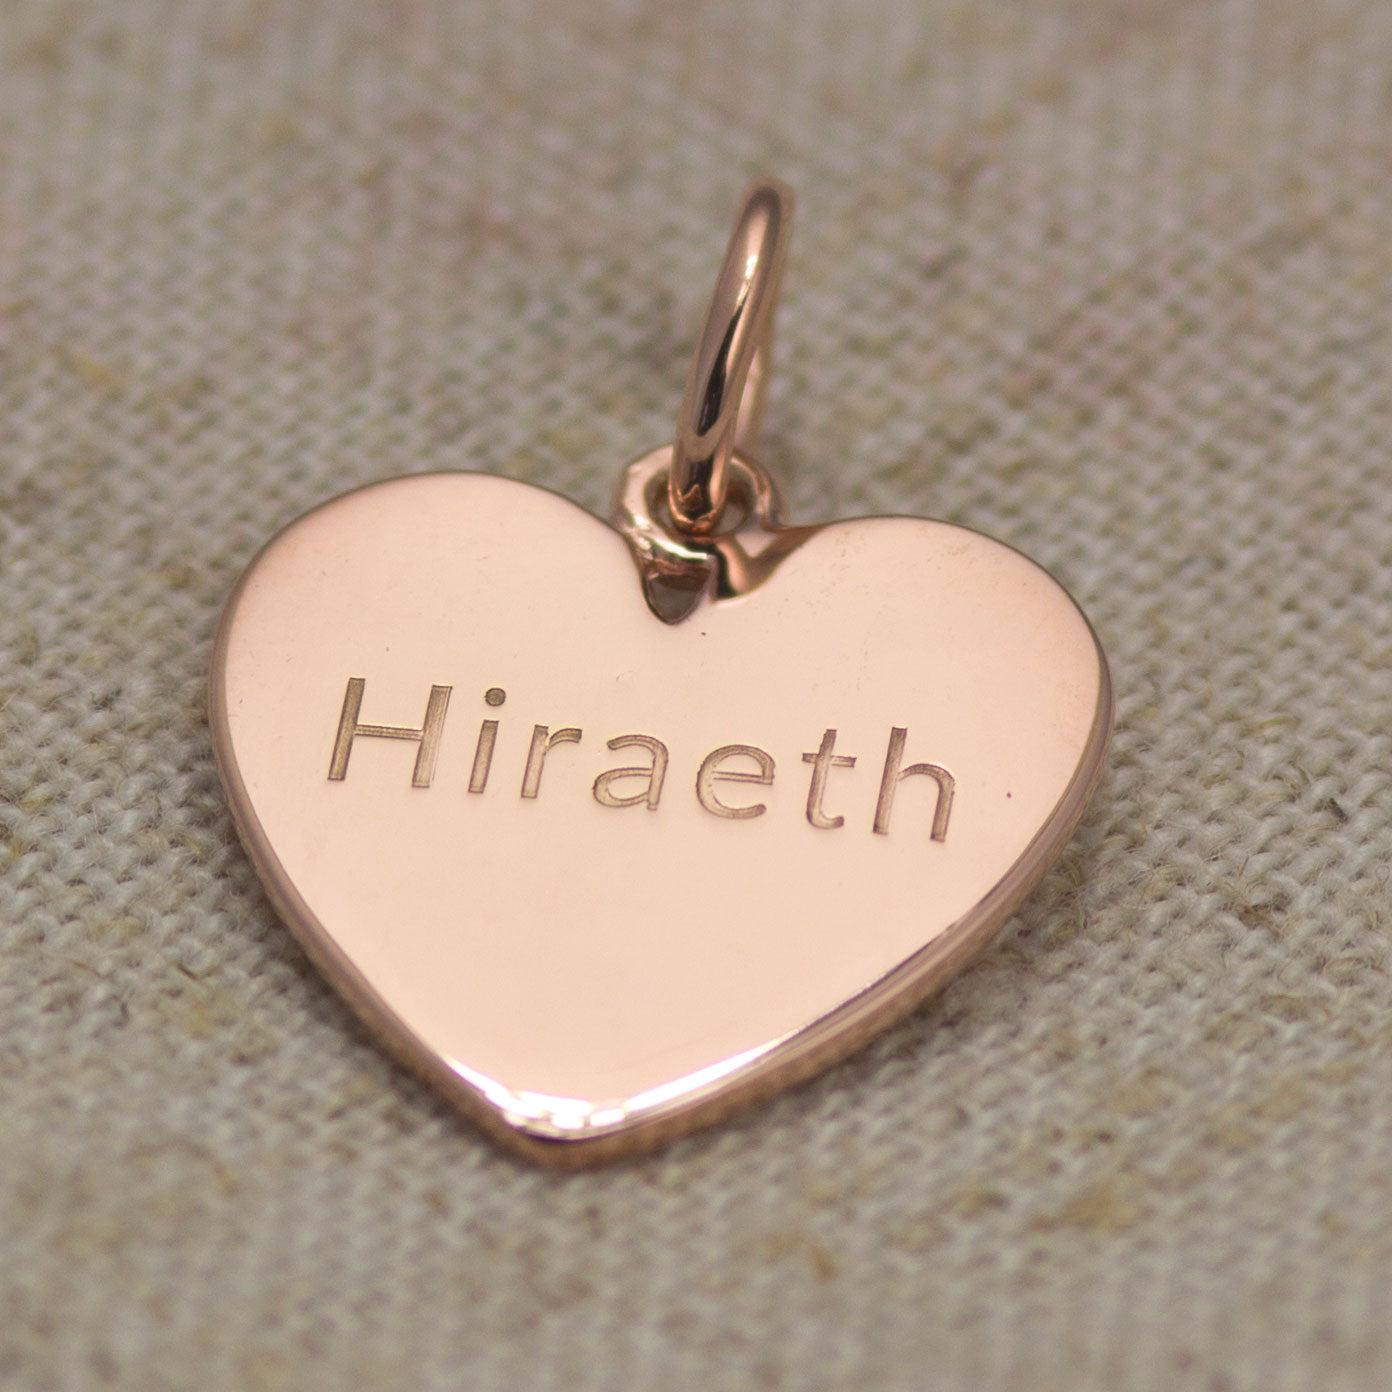 Pendant - Hiraeth - Large - Rose Gold Plated